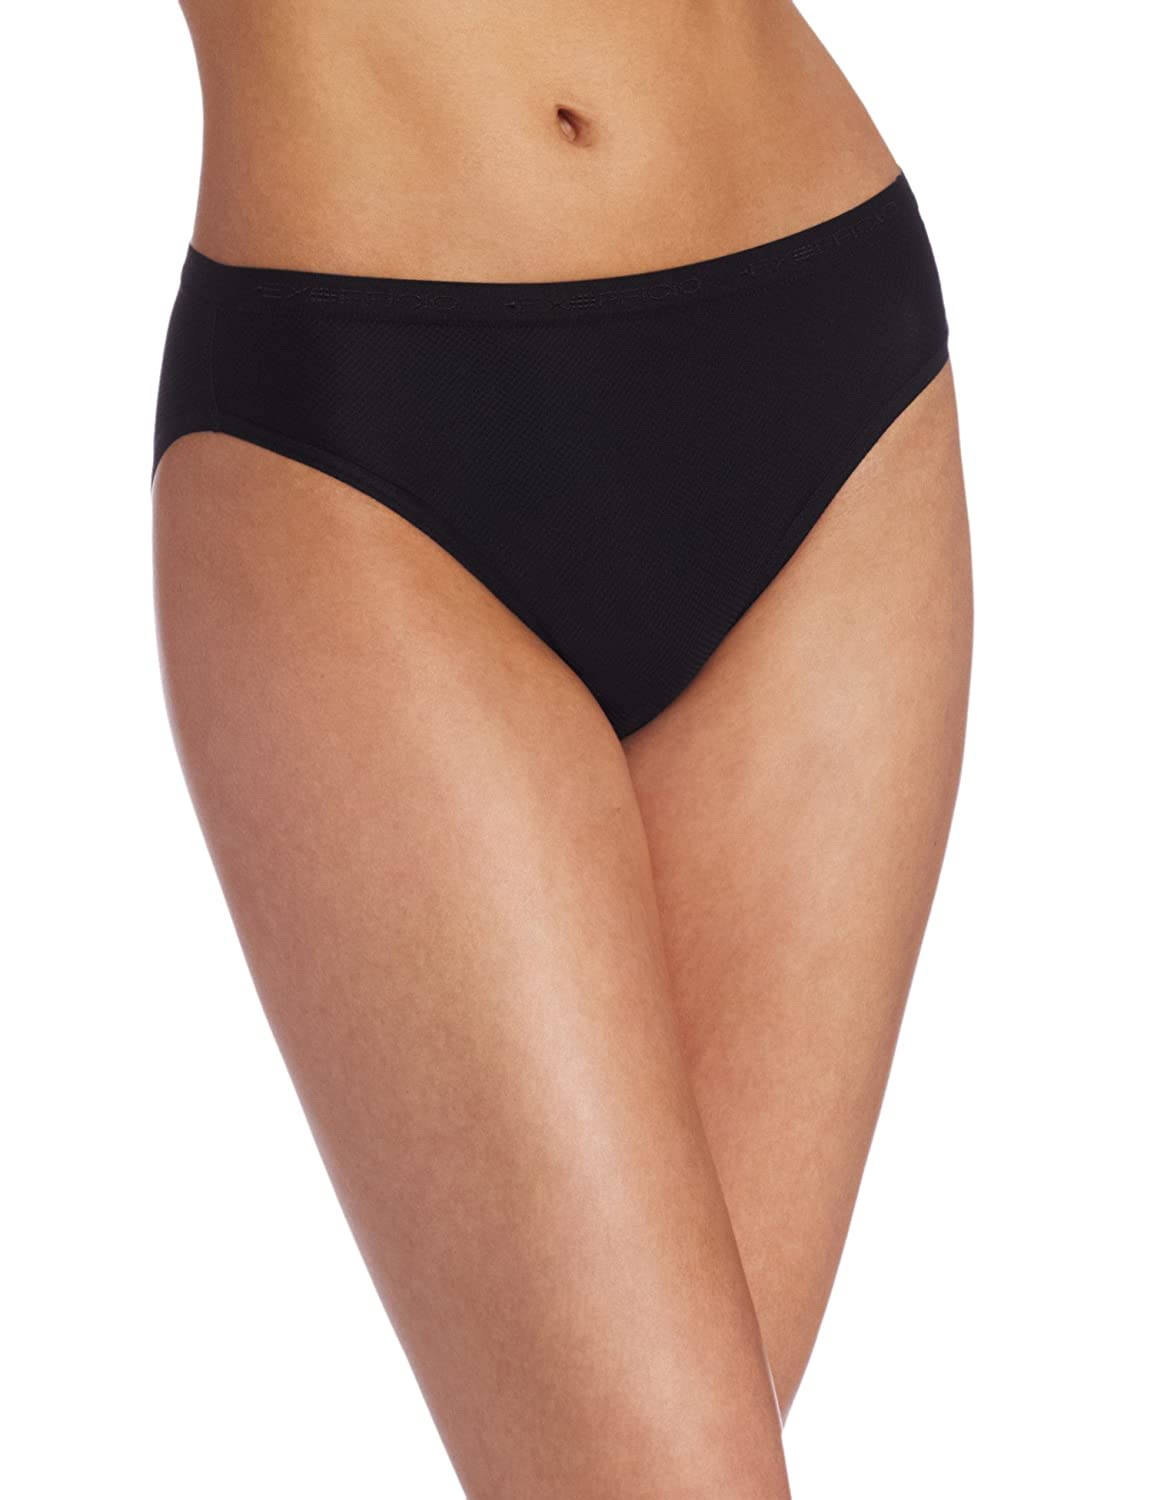 71HGh yVHGL. SL1500  - Top 5 Underwear For Leggings